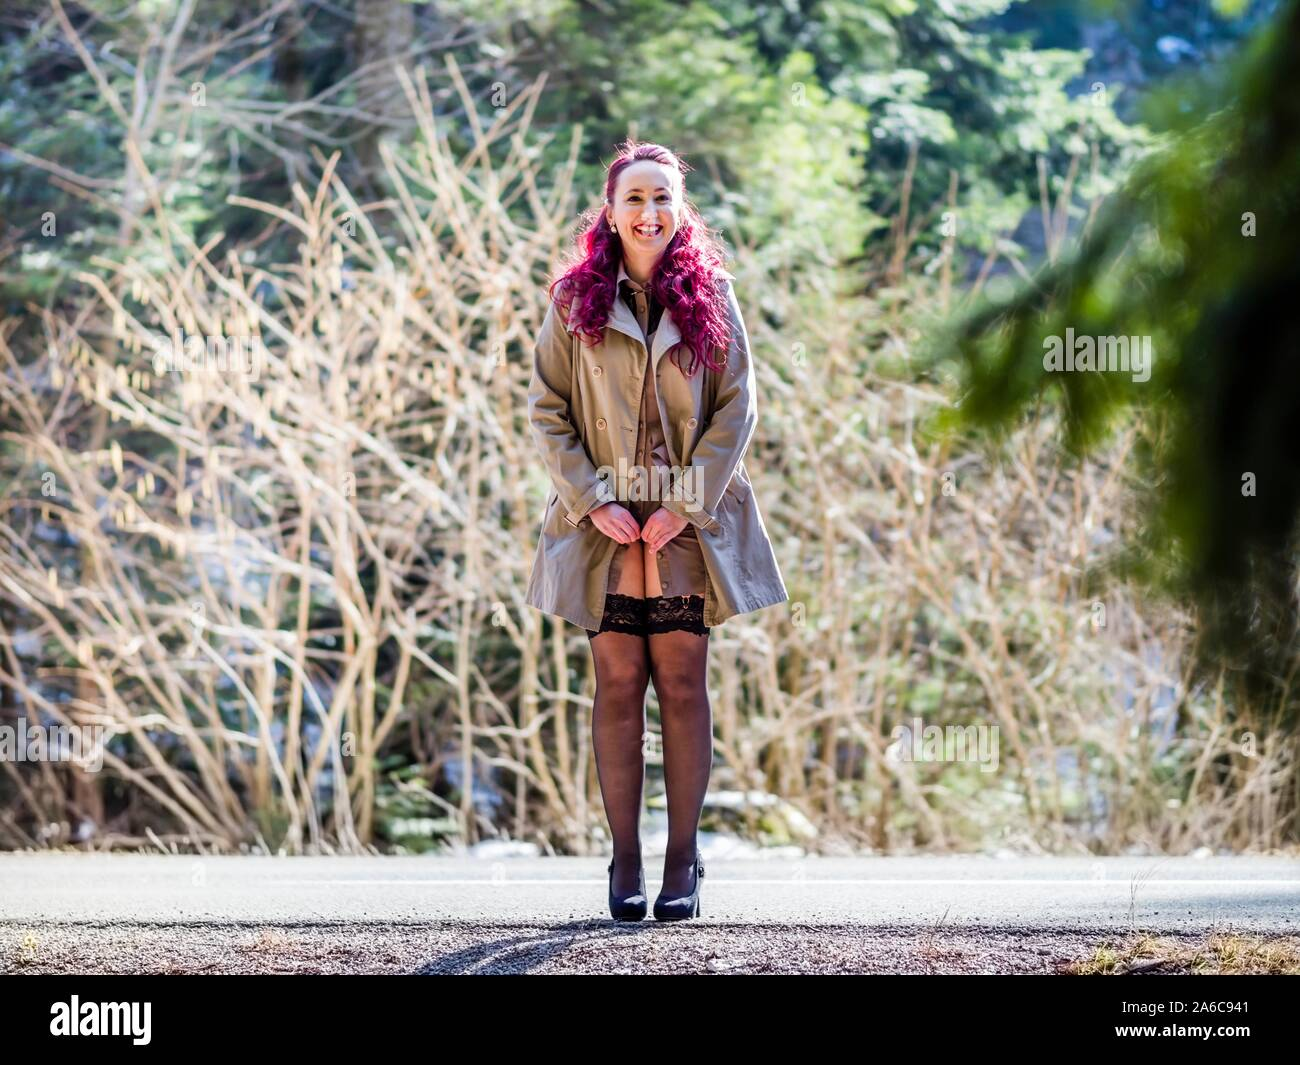 Buttoning her coat standing on country-road smiling looking at camera Stock Photo